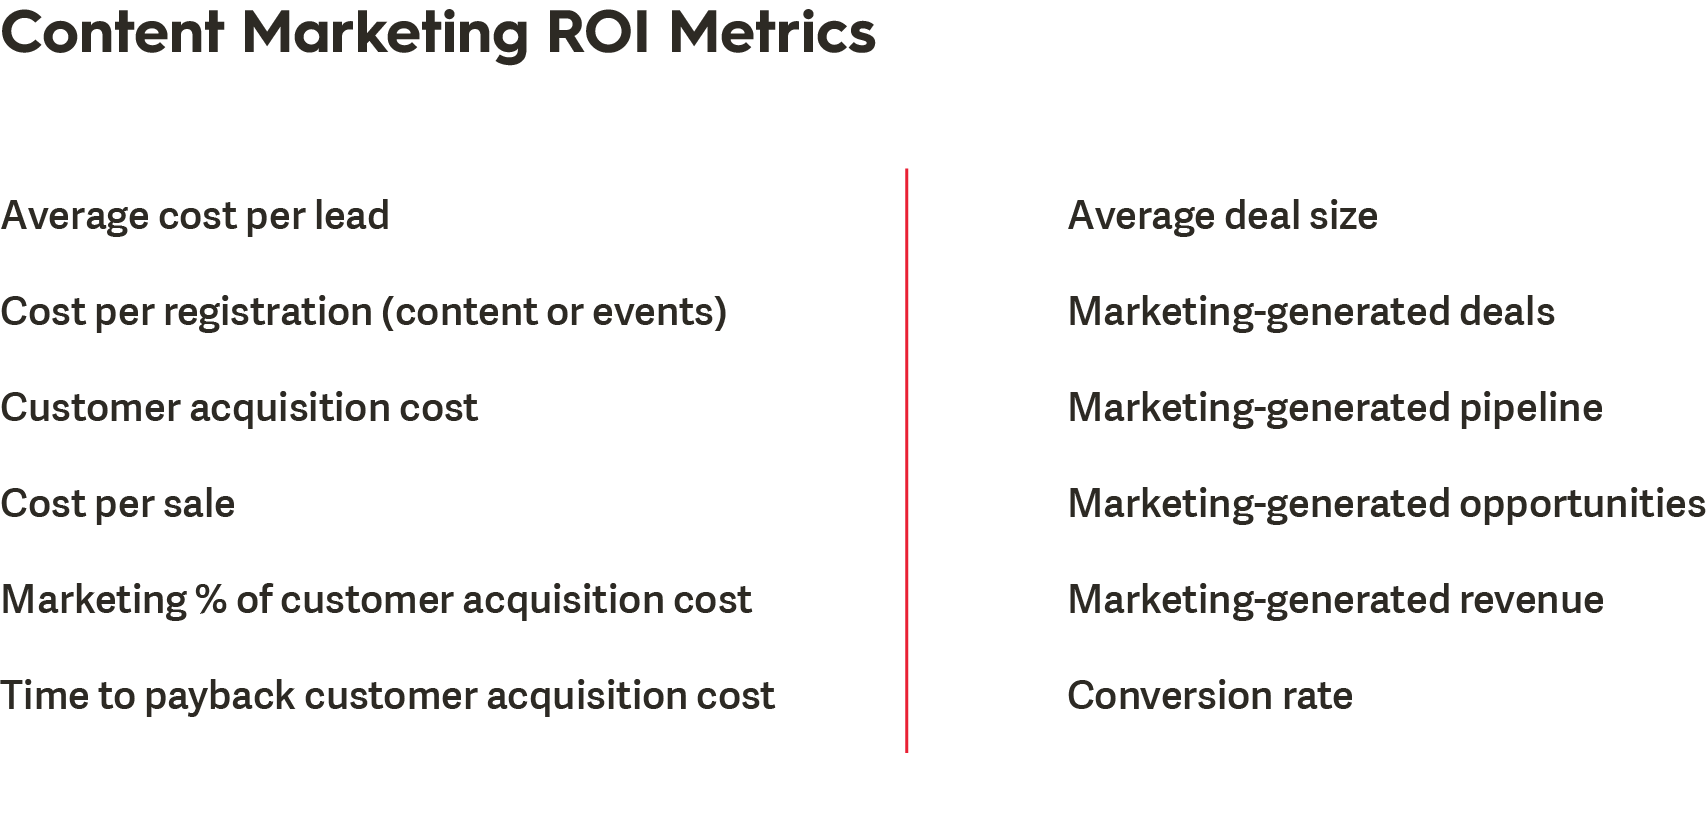 How to Calculate Content Marketing ROI - Insights